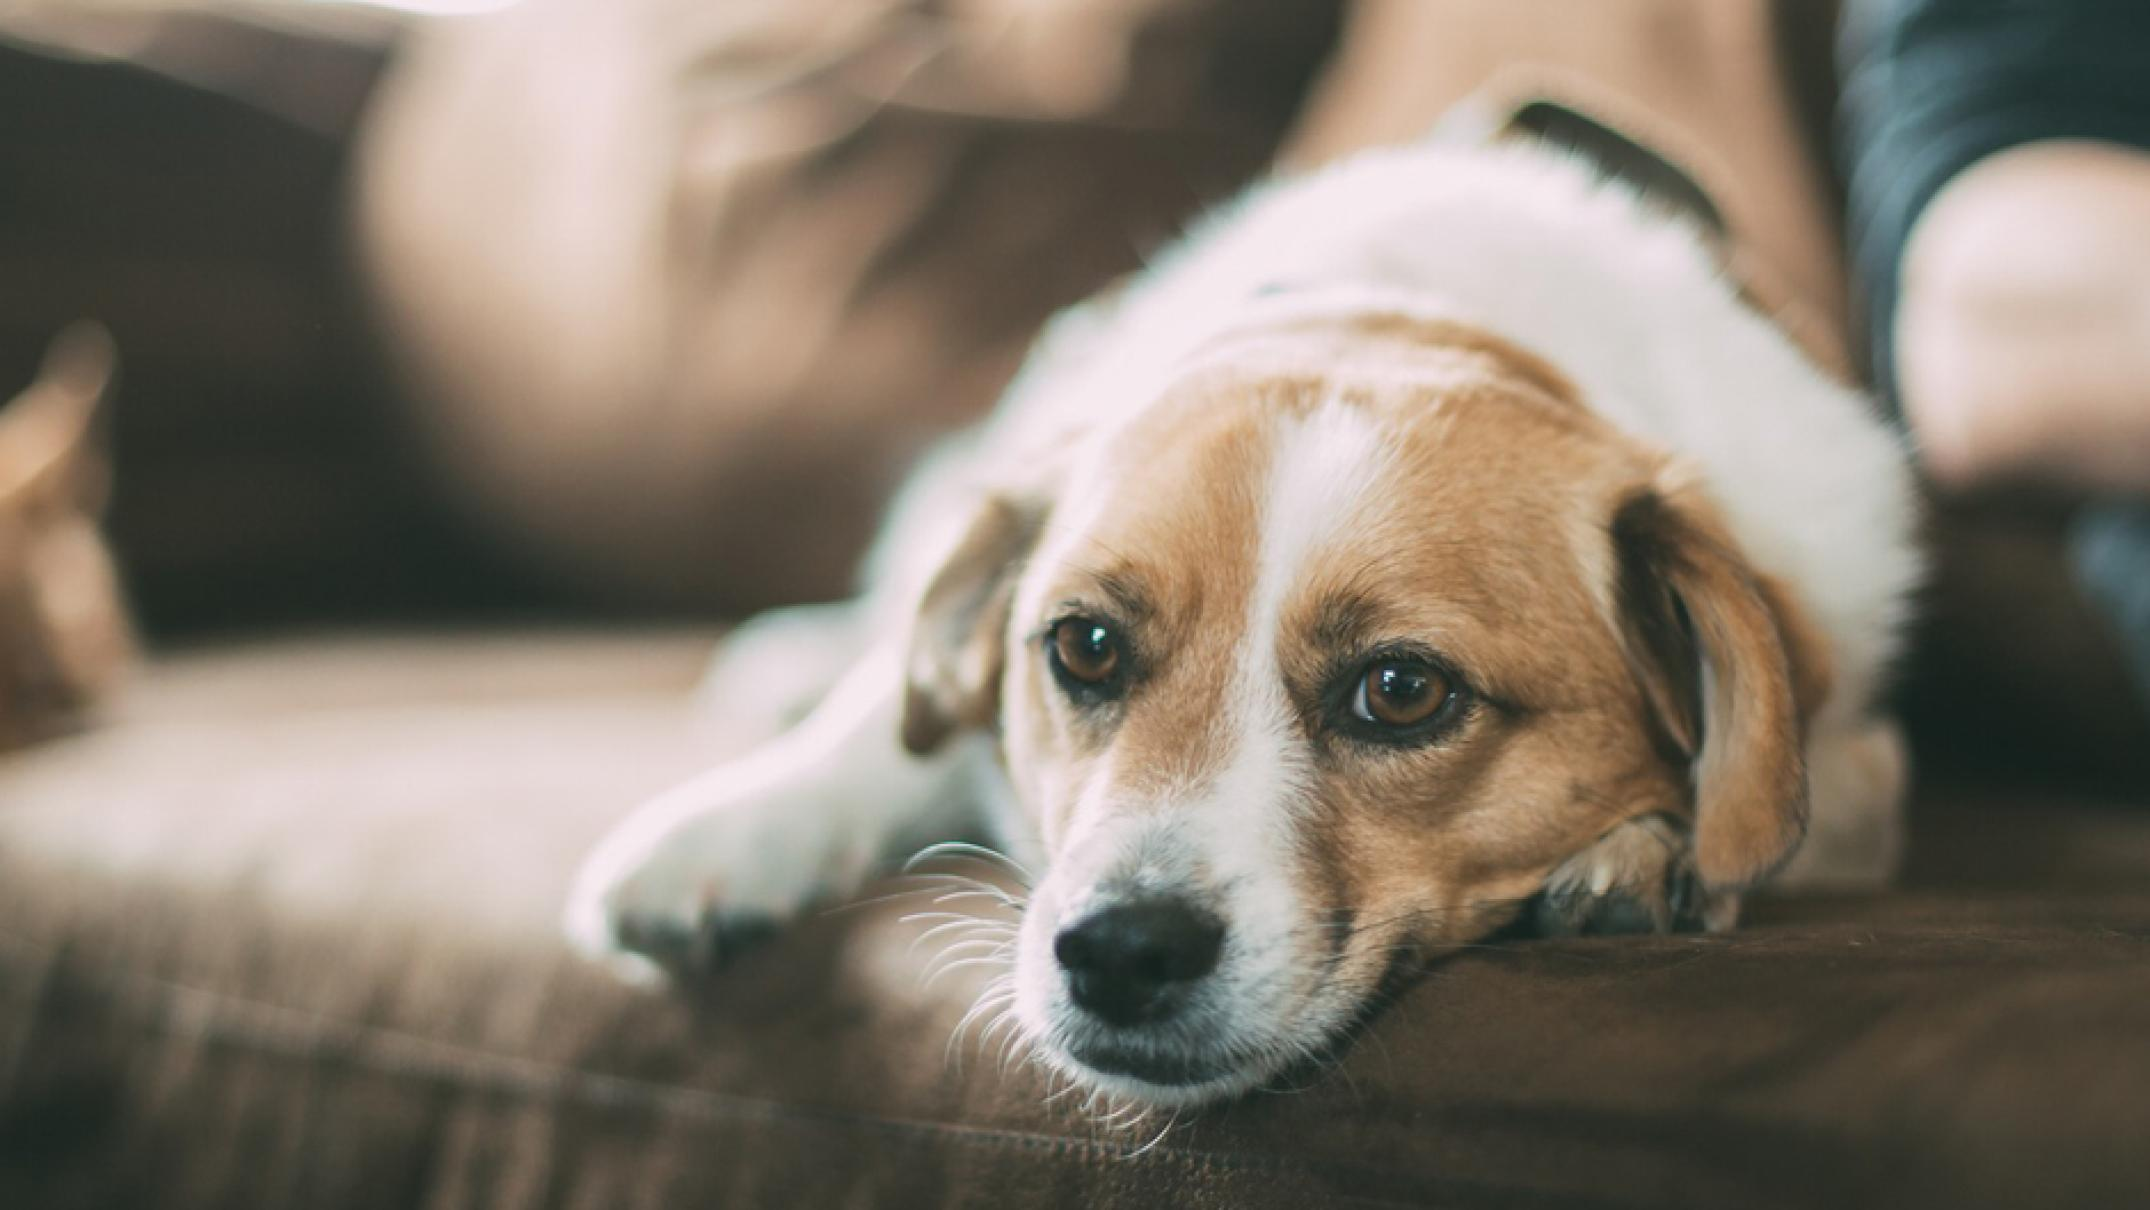 a-new-deadly-disease-outbreak-is-threatening-dogs.-this-is-what-you-need-to-watch-for